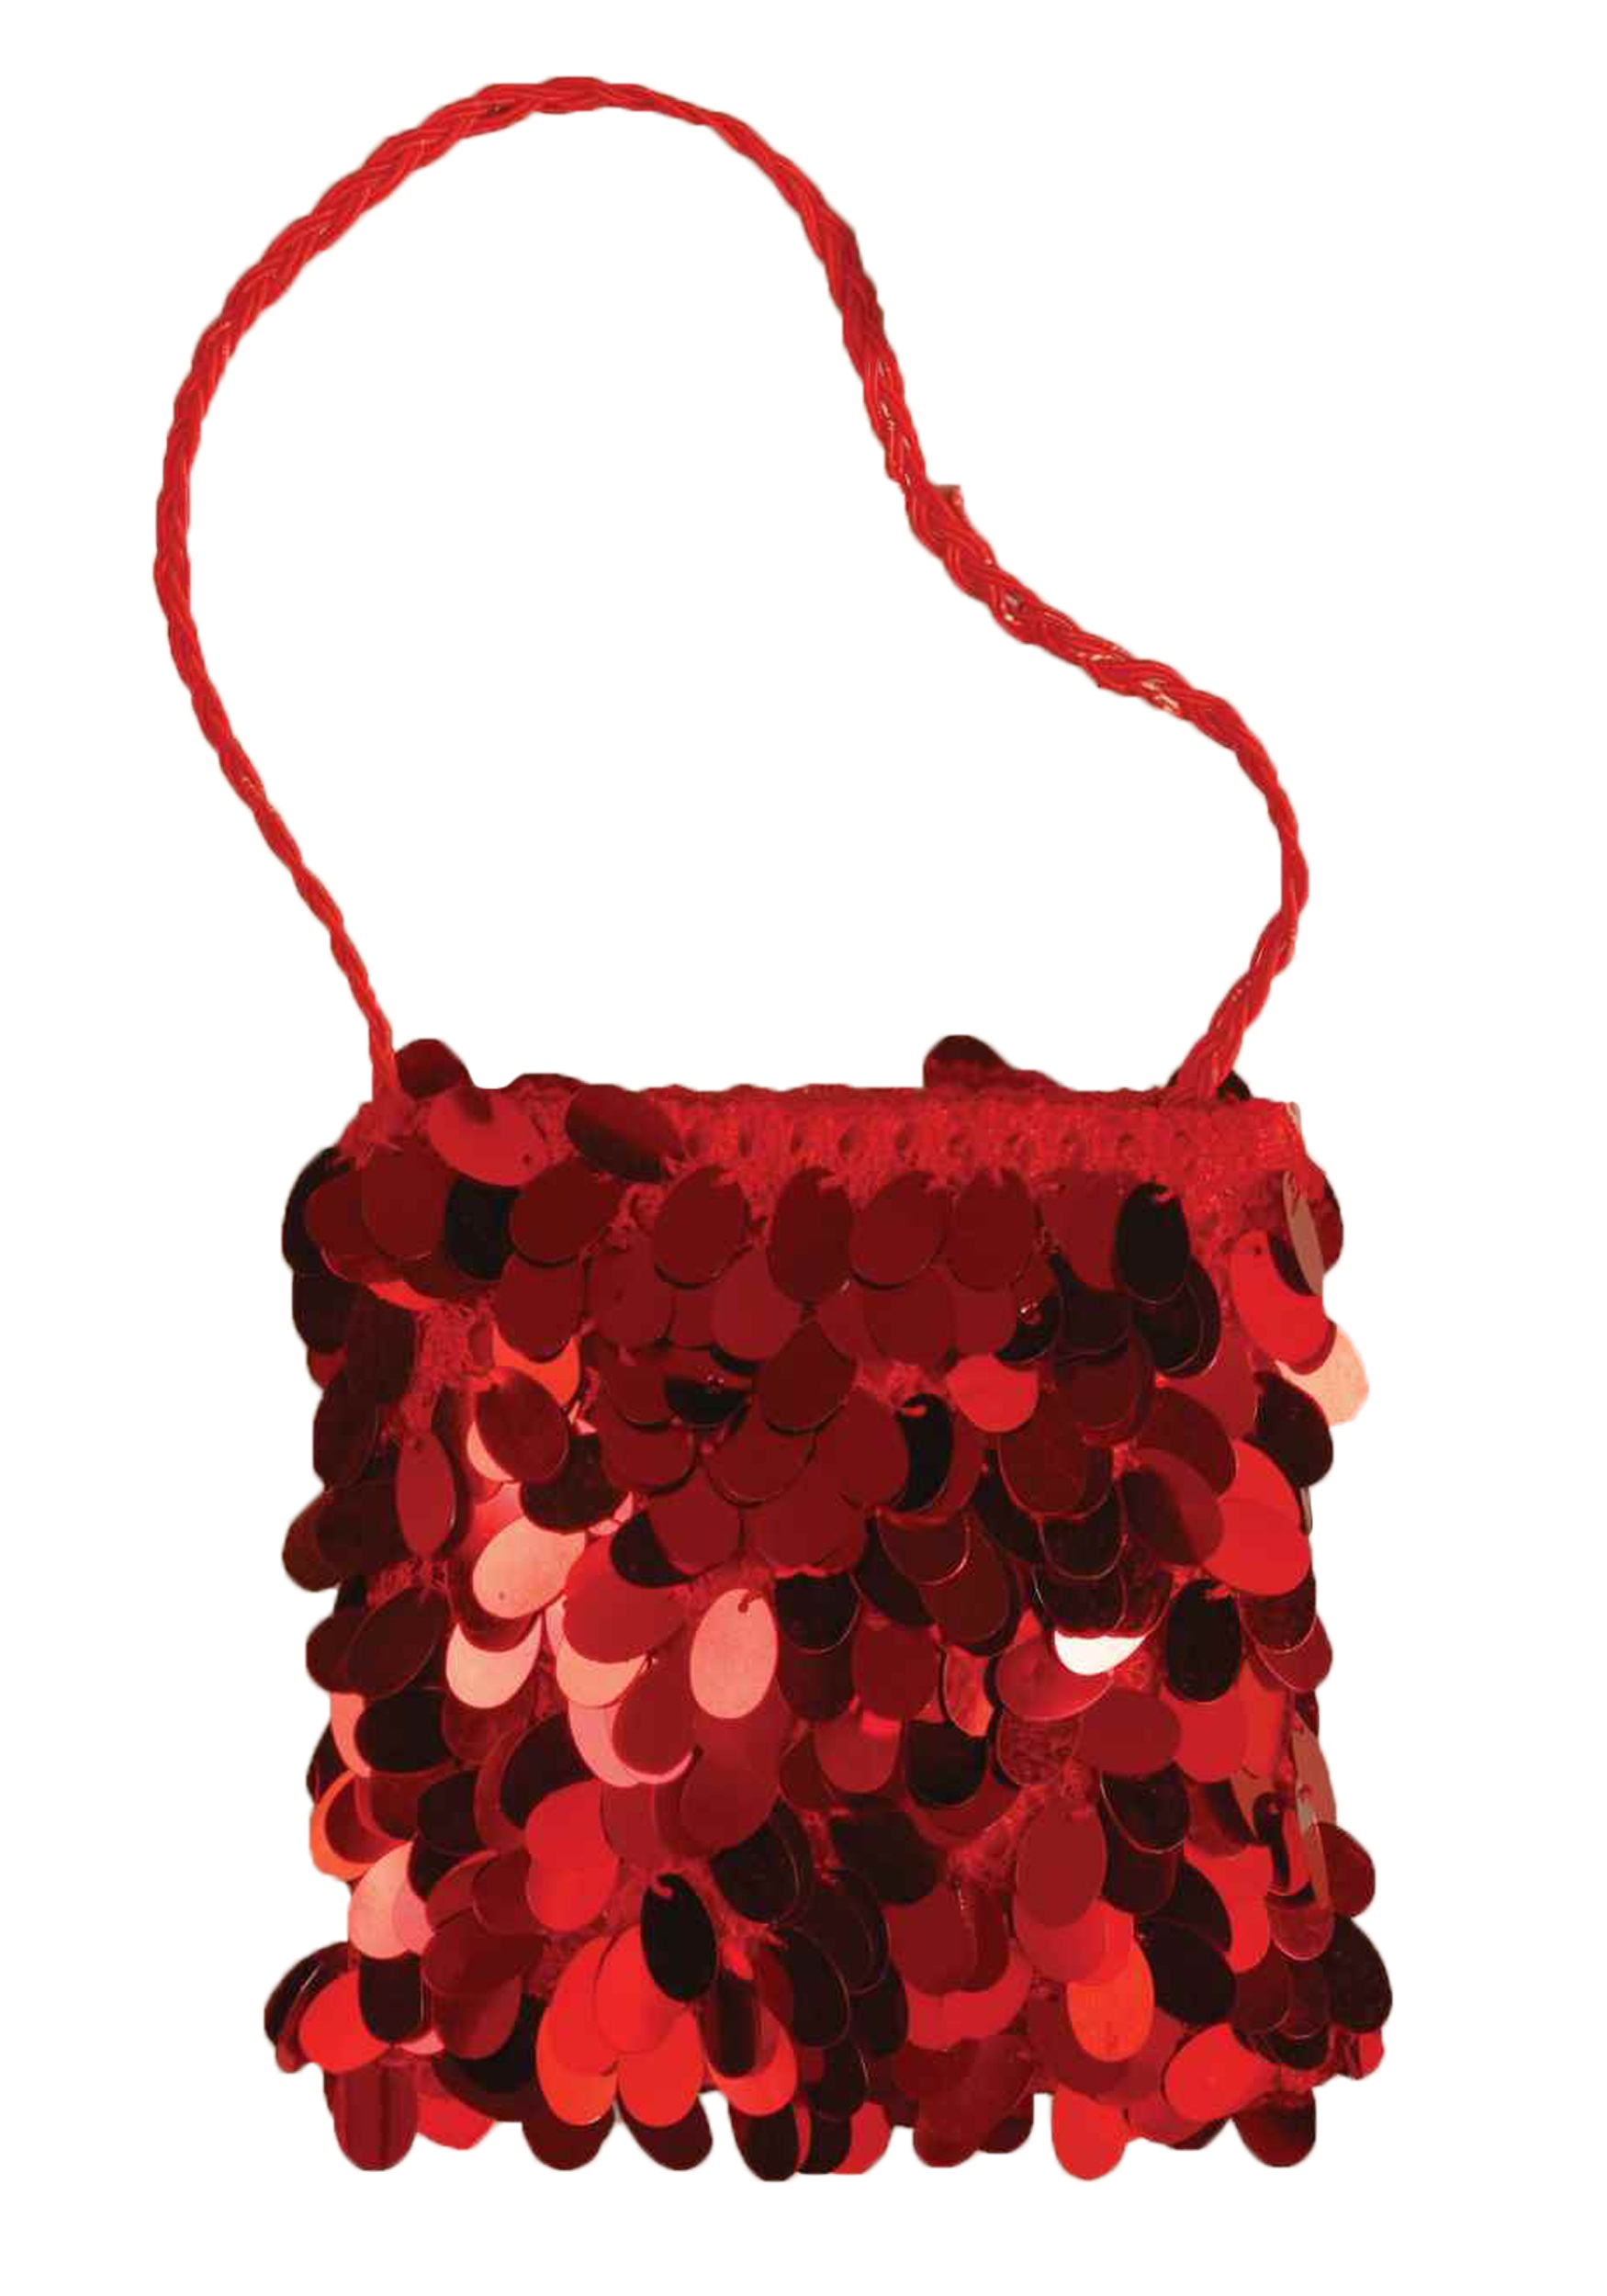 Red Flapper Bag